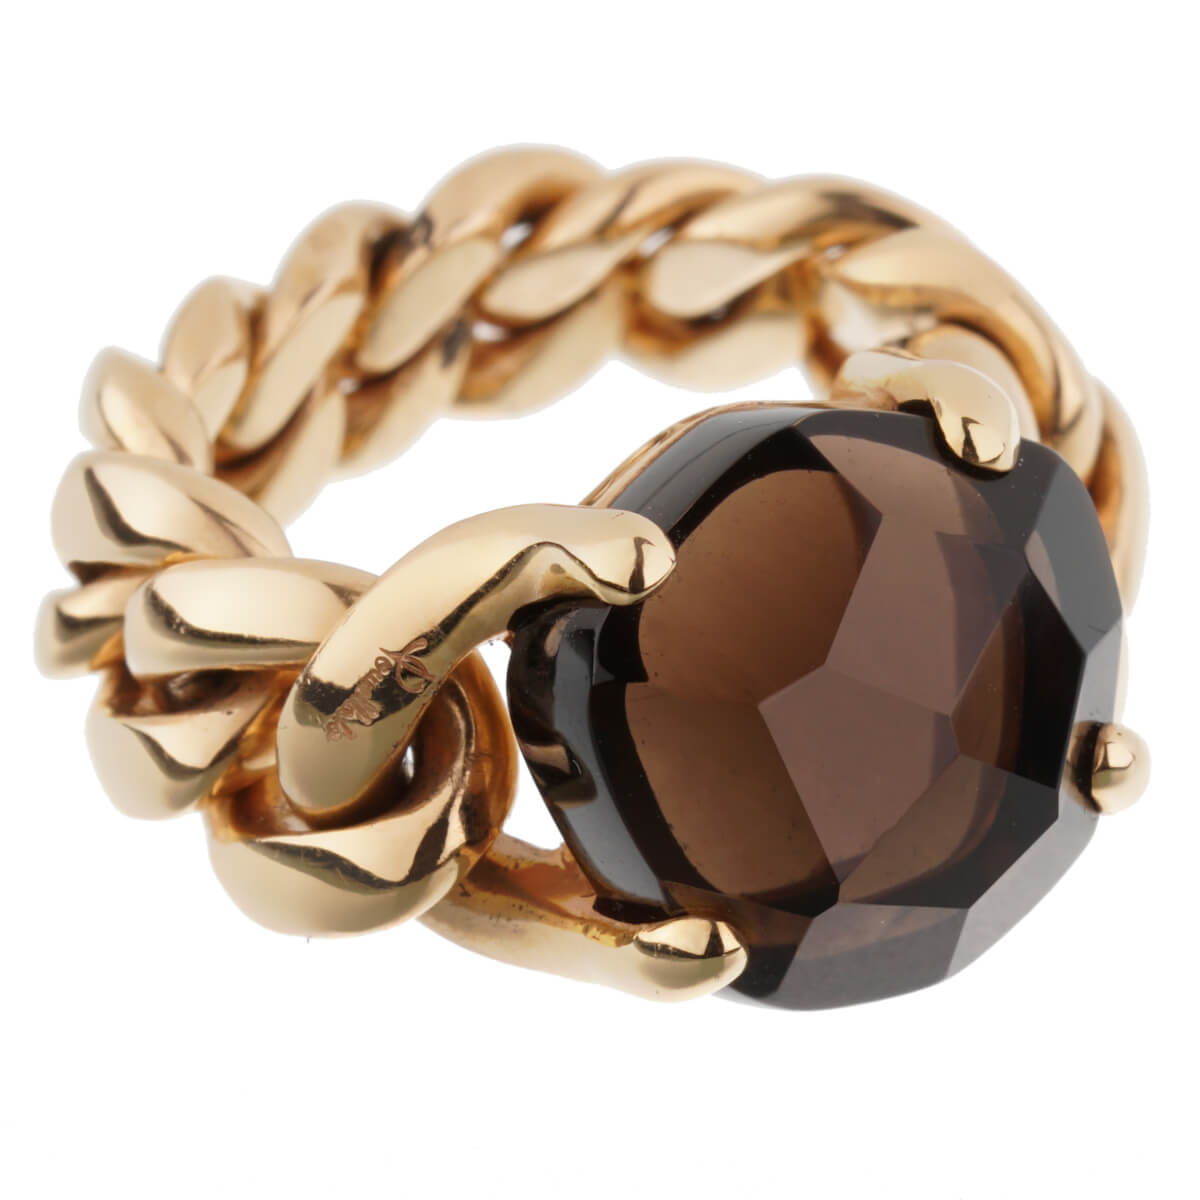 Pomellato 6.65ct Smoky Quartz Chain Link Gold Ring